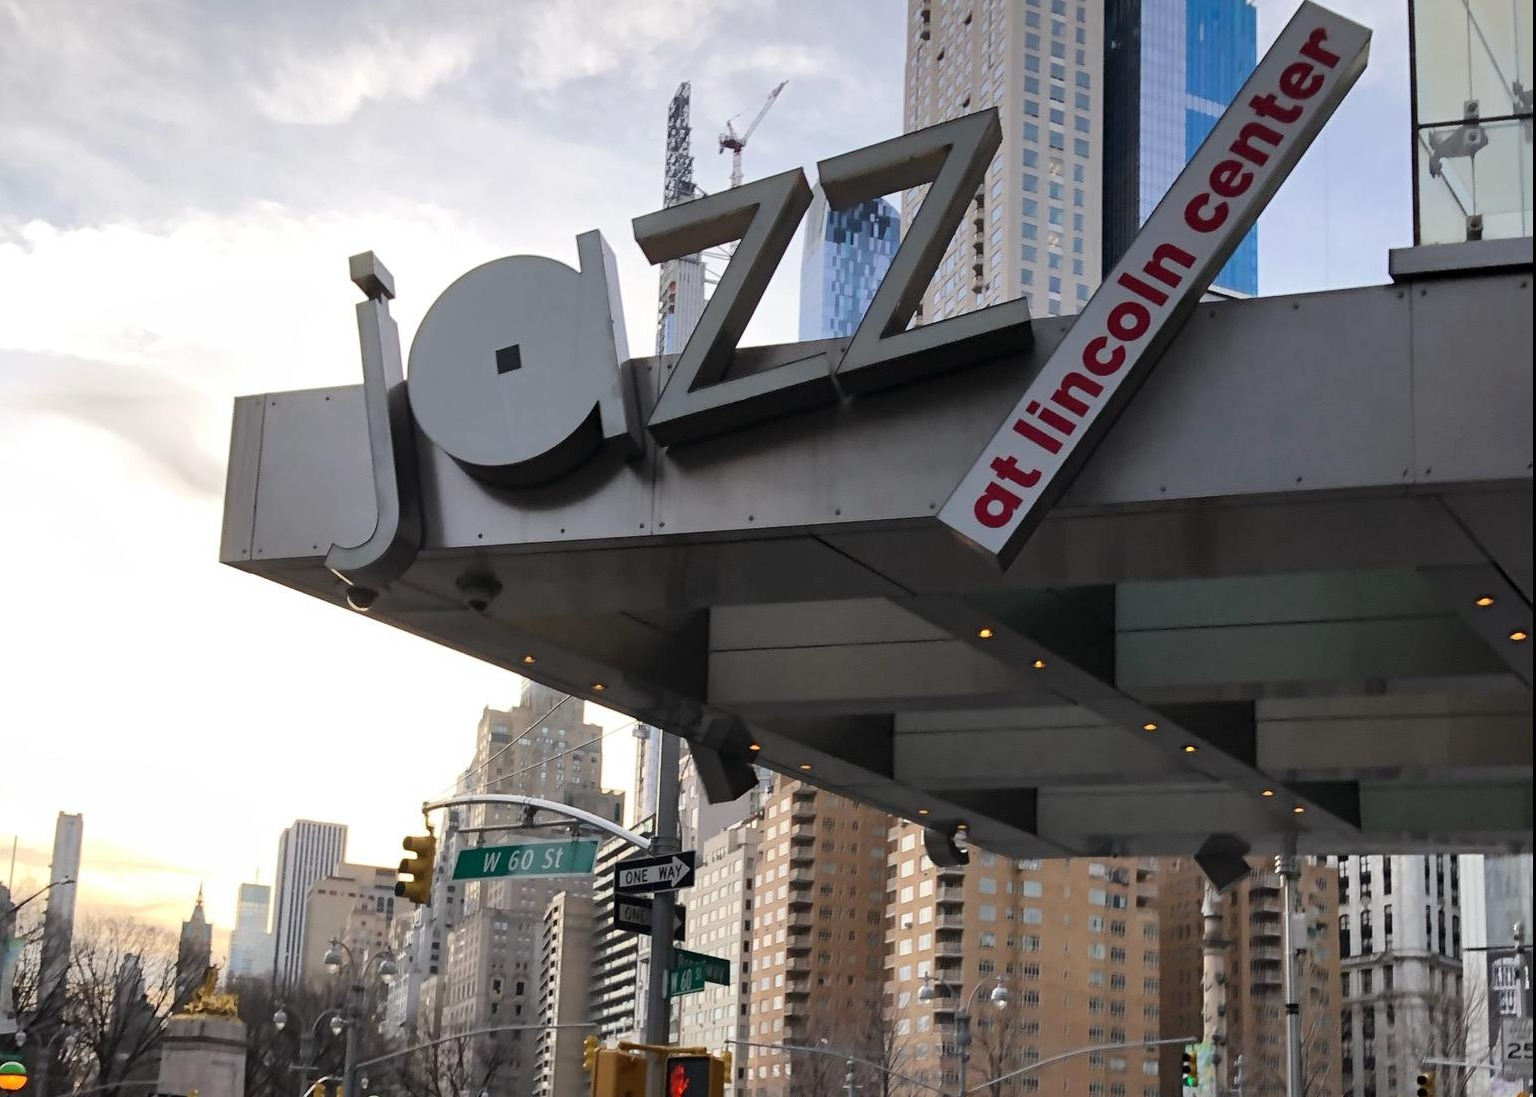 Exchanging ideas to nurture and grow the jazz community at Jazz Congress Thumbnail